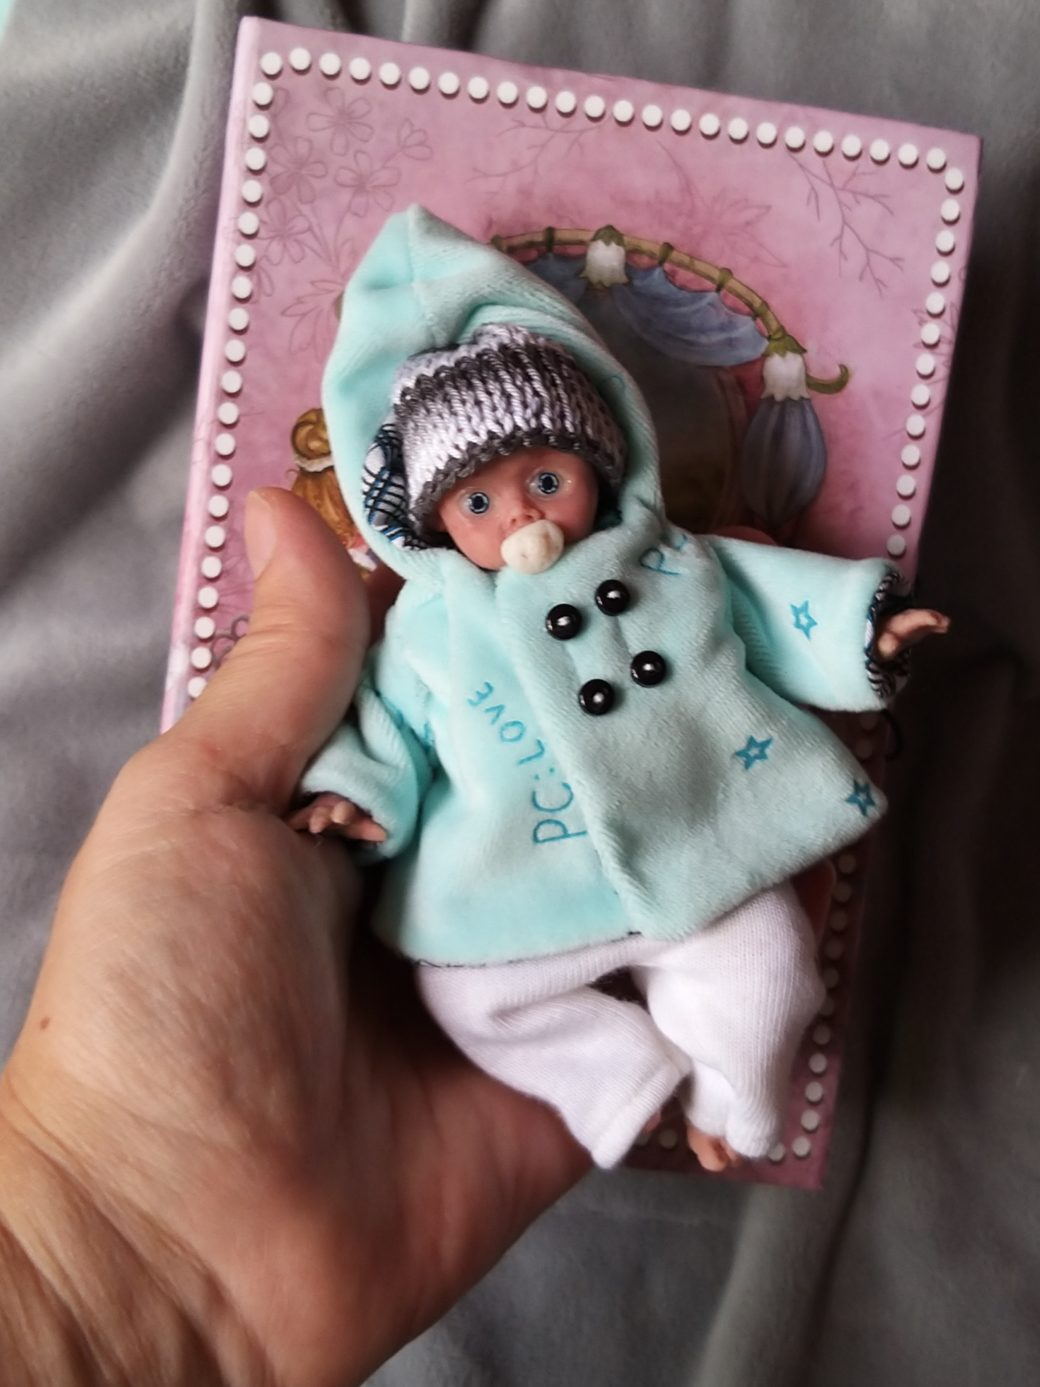 full silicone baby 5 inch kovalevadoll reborn babies